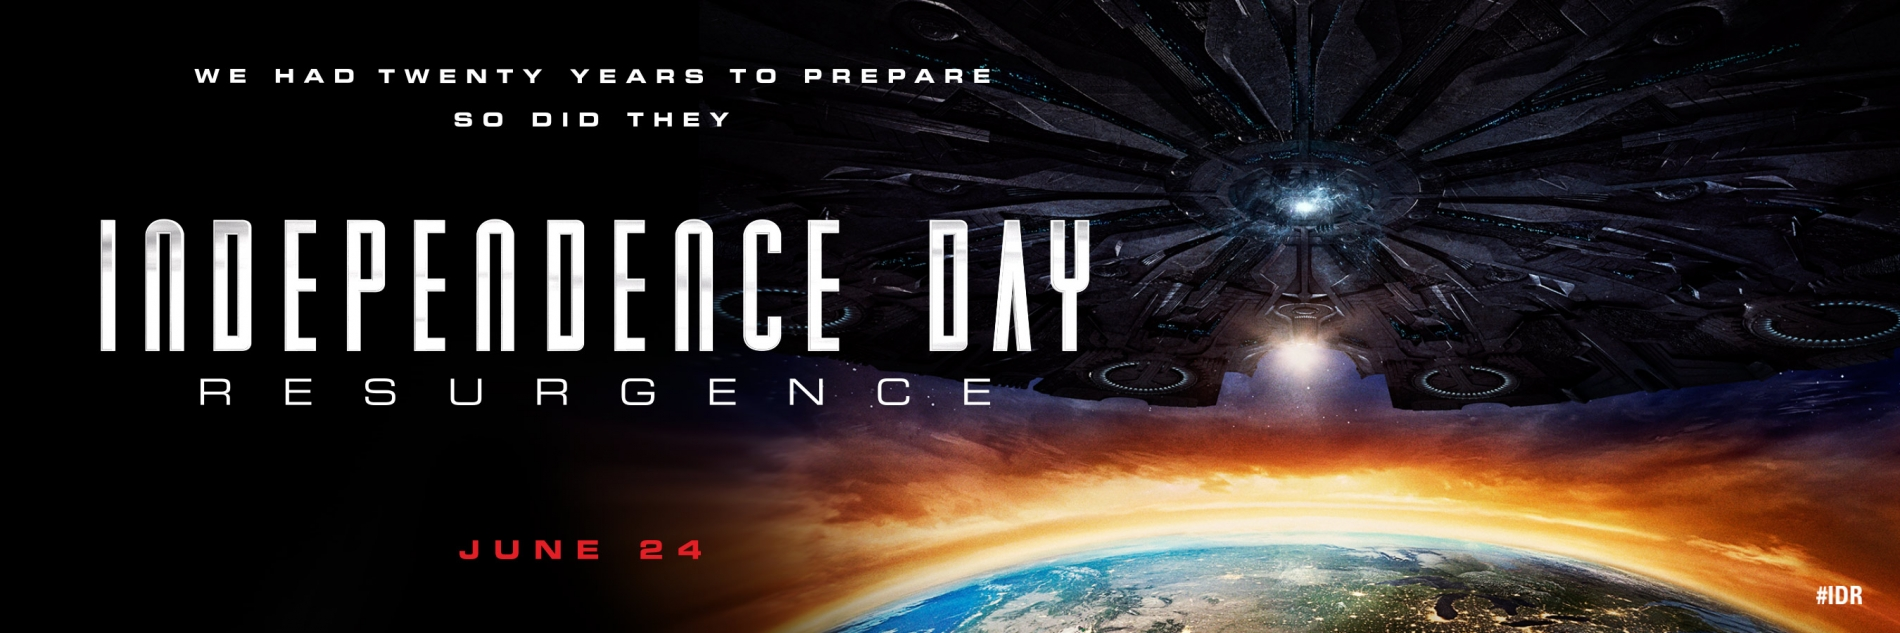 Independence Day Resurgence 2016 wallpaper 2018 in Movies 1900x633